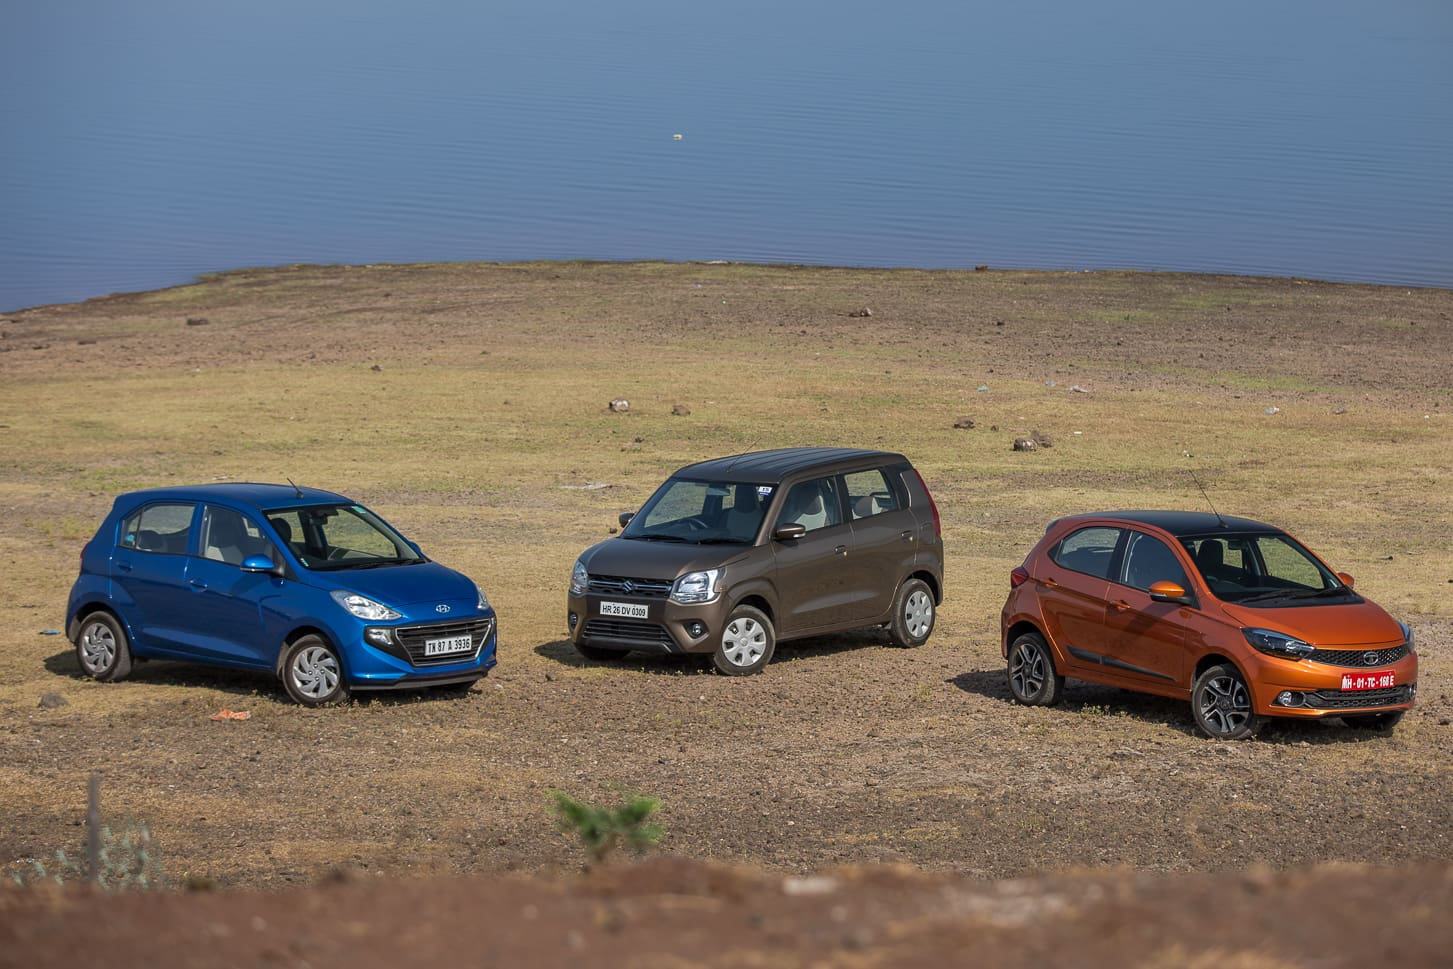 Maruti WagonR vs Hyundai Santro vs Tata Tiago - Comparison Review